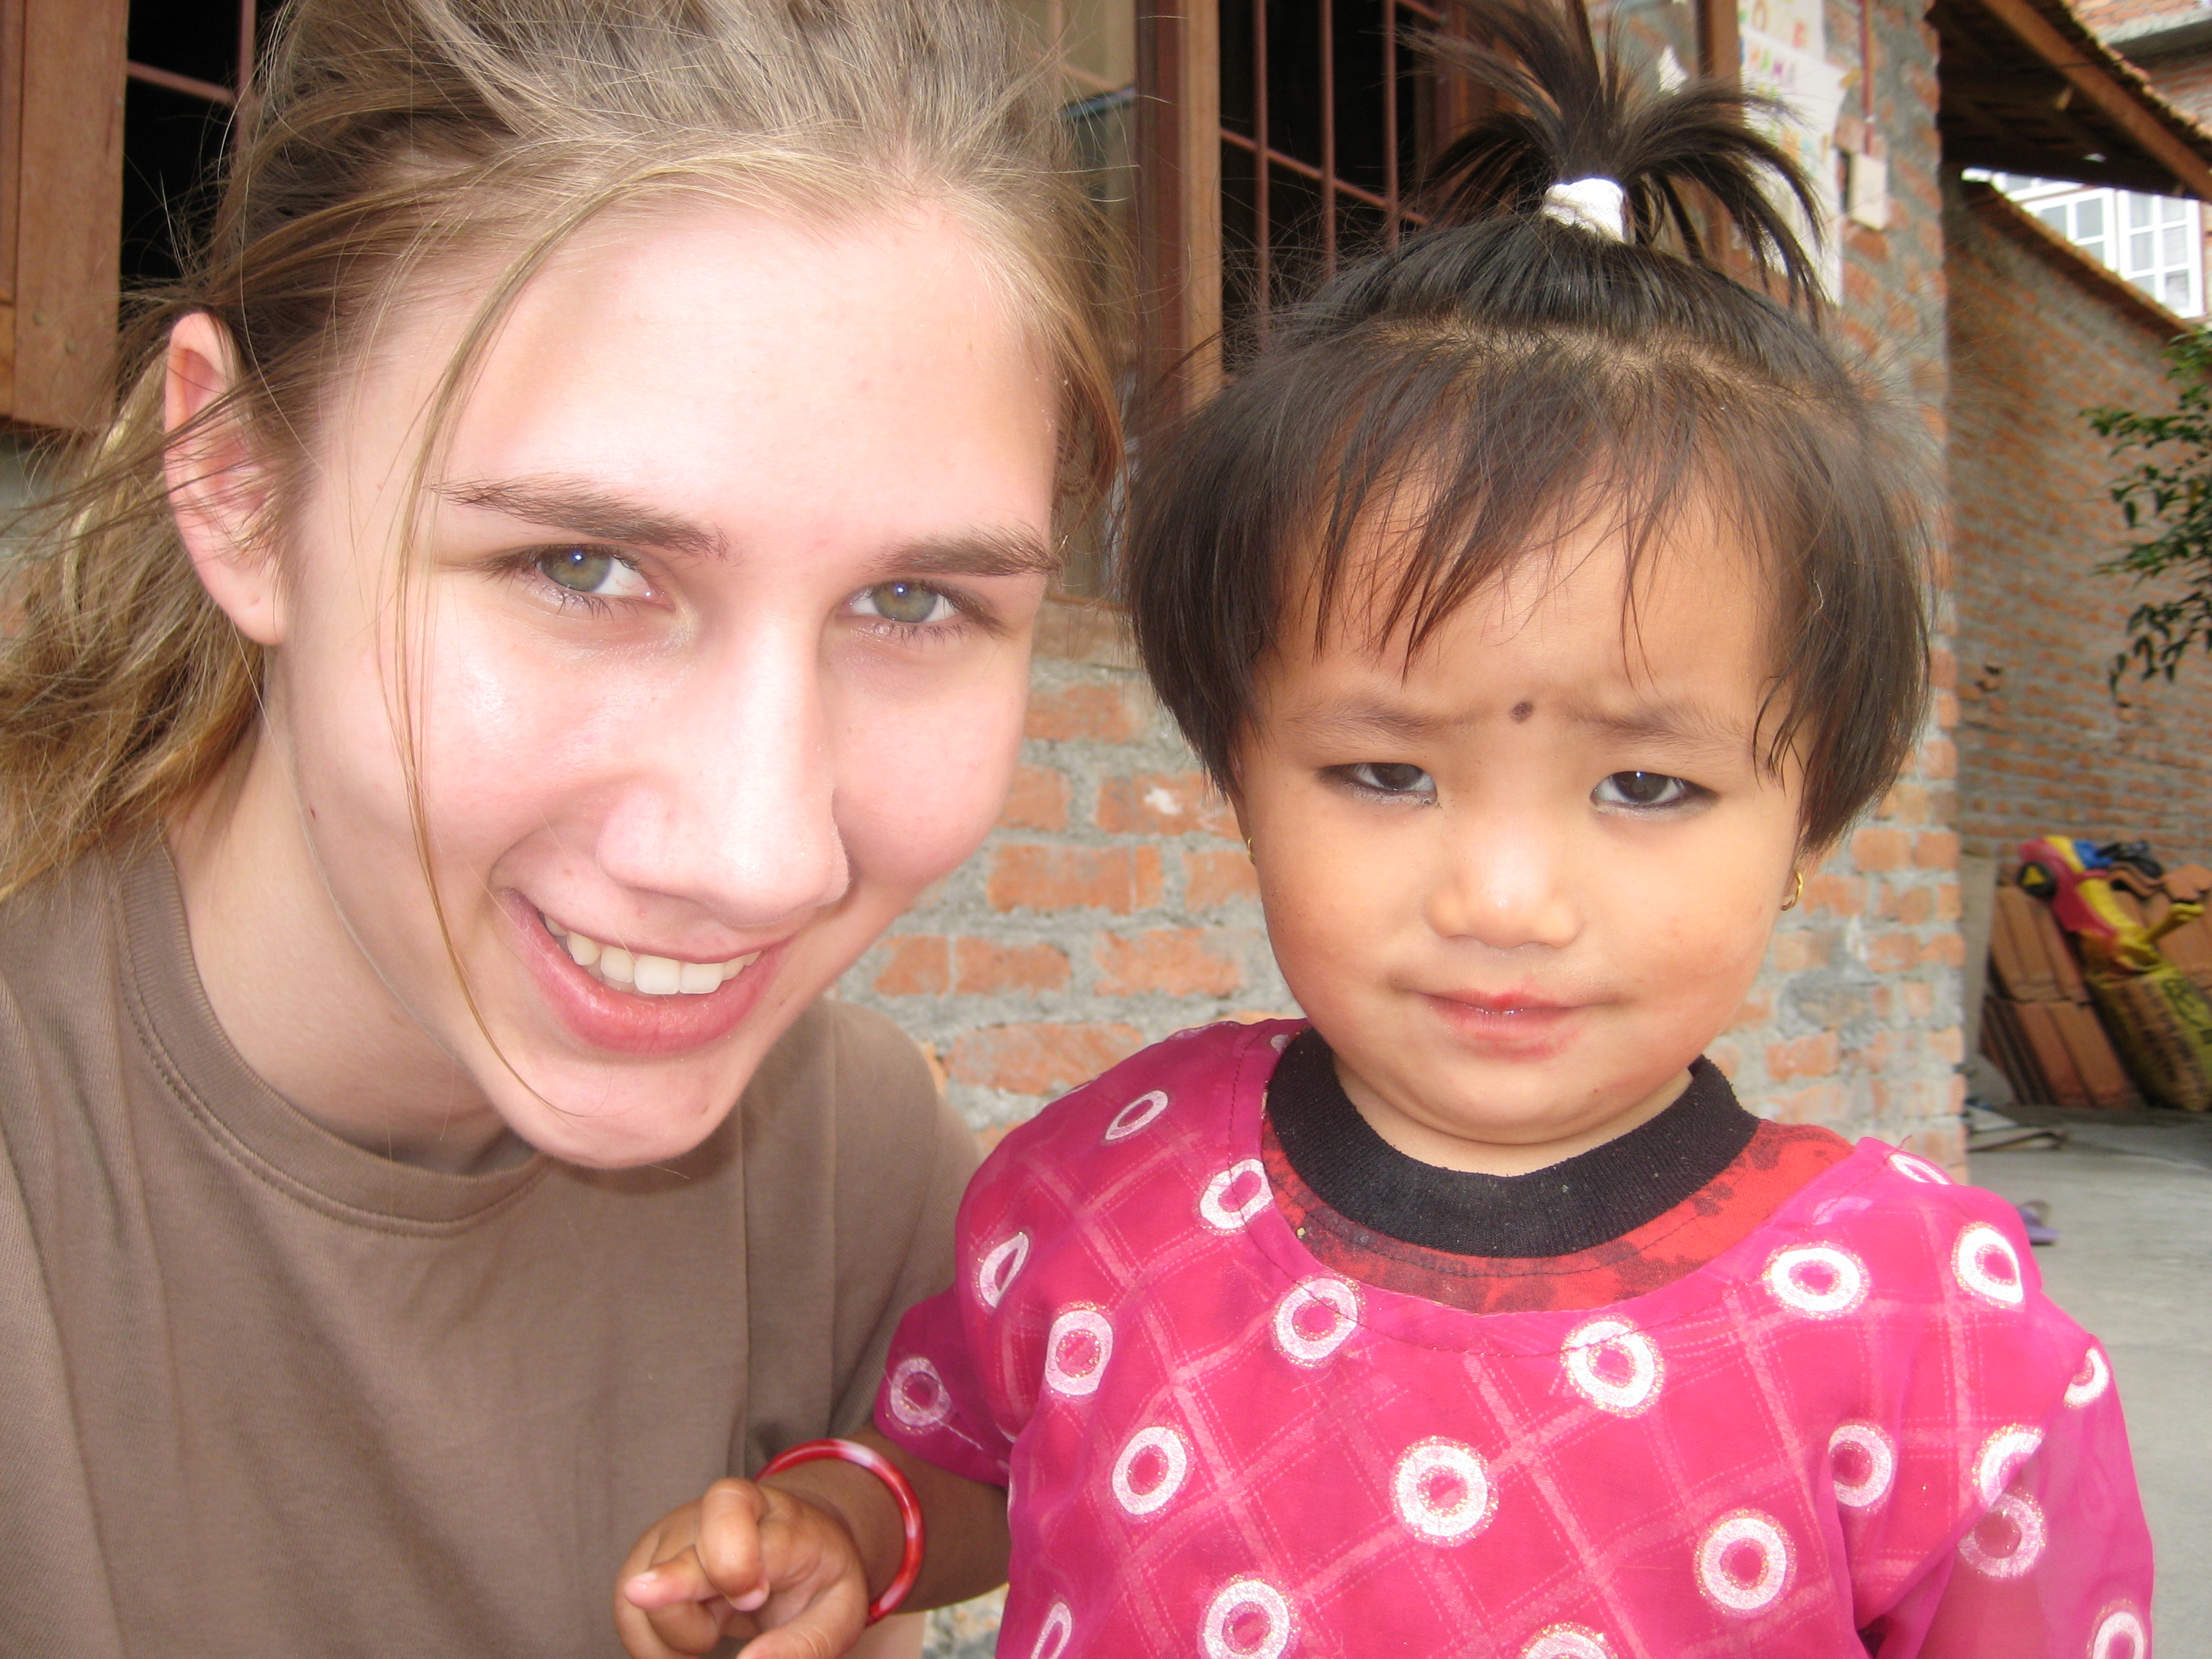 Nepal Teachers Rachel and Britanny Preschool Child